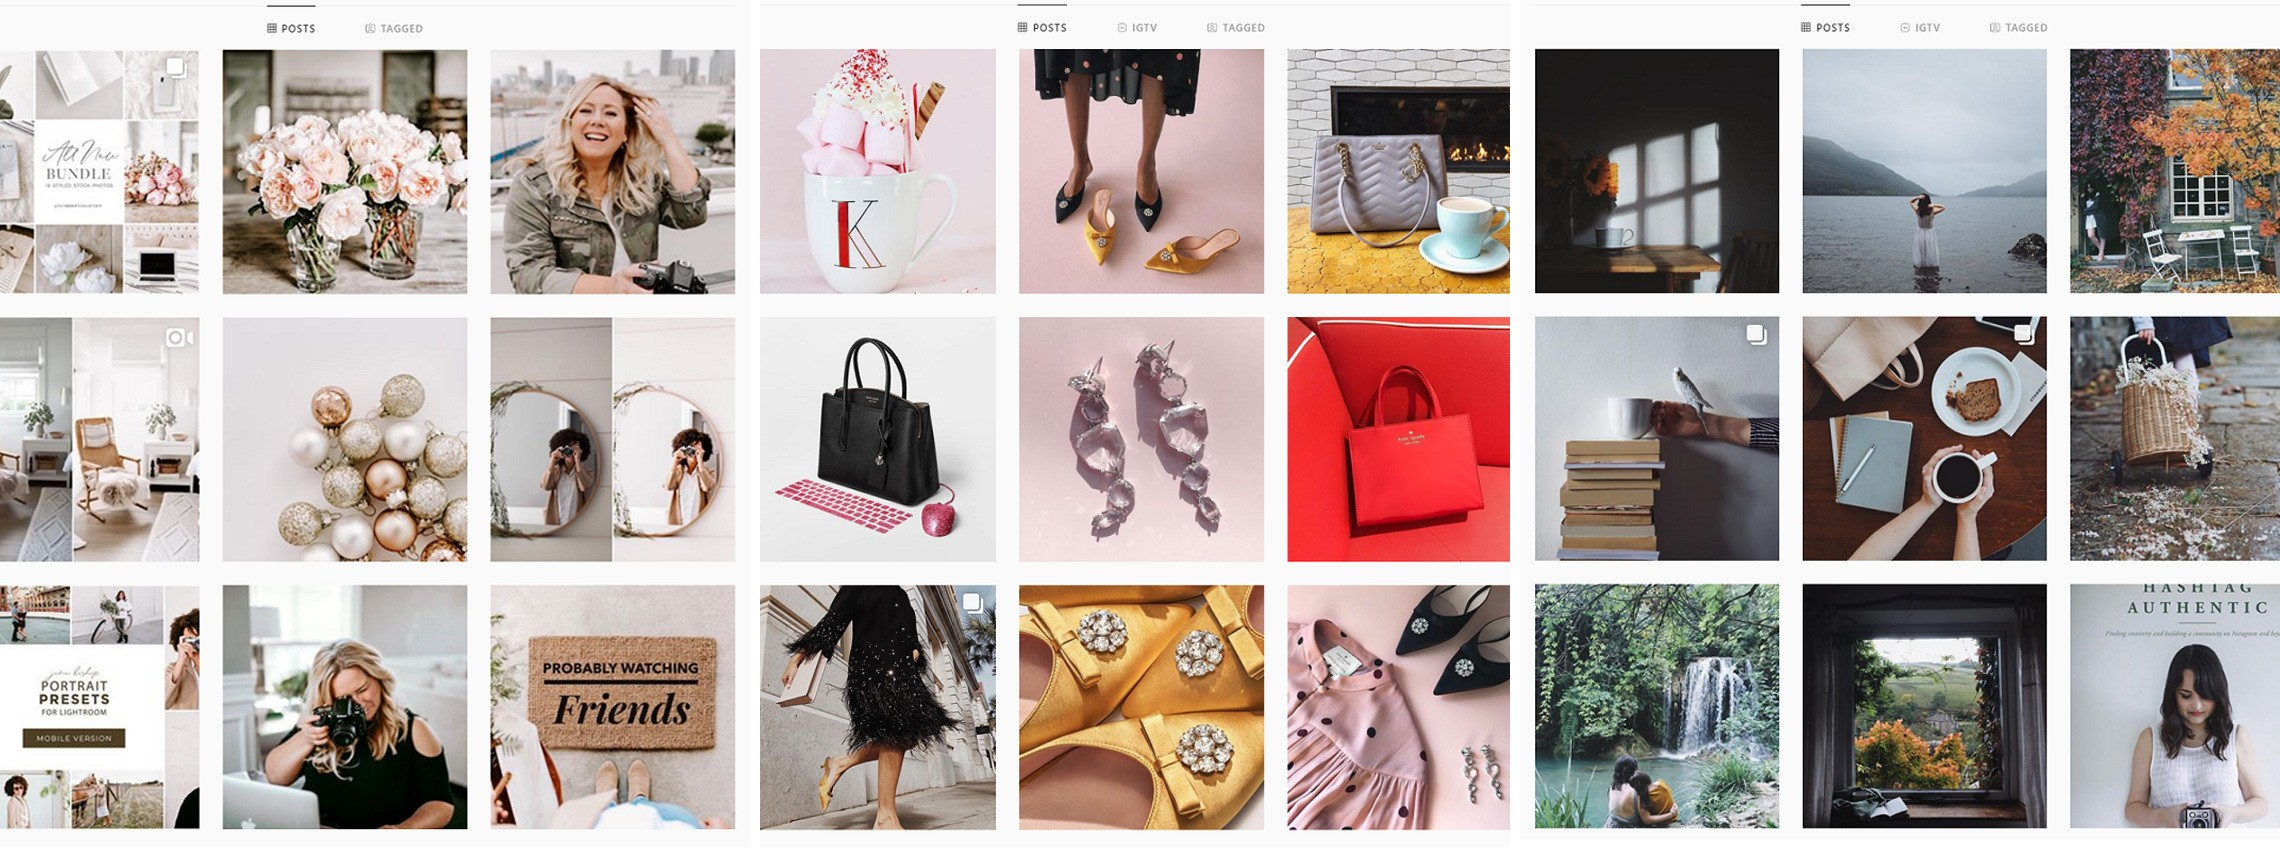 Social Media Design Inspiration — Gorgeous Feeds and Posts